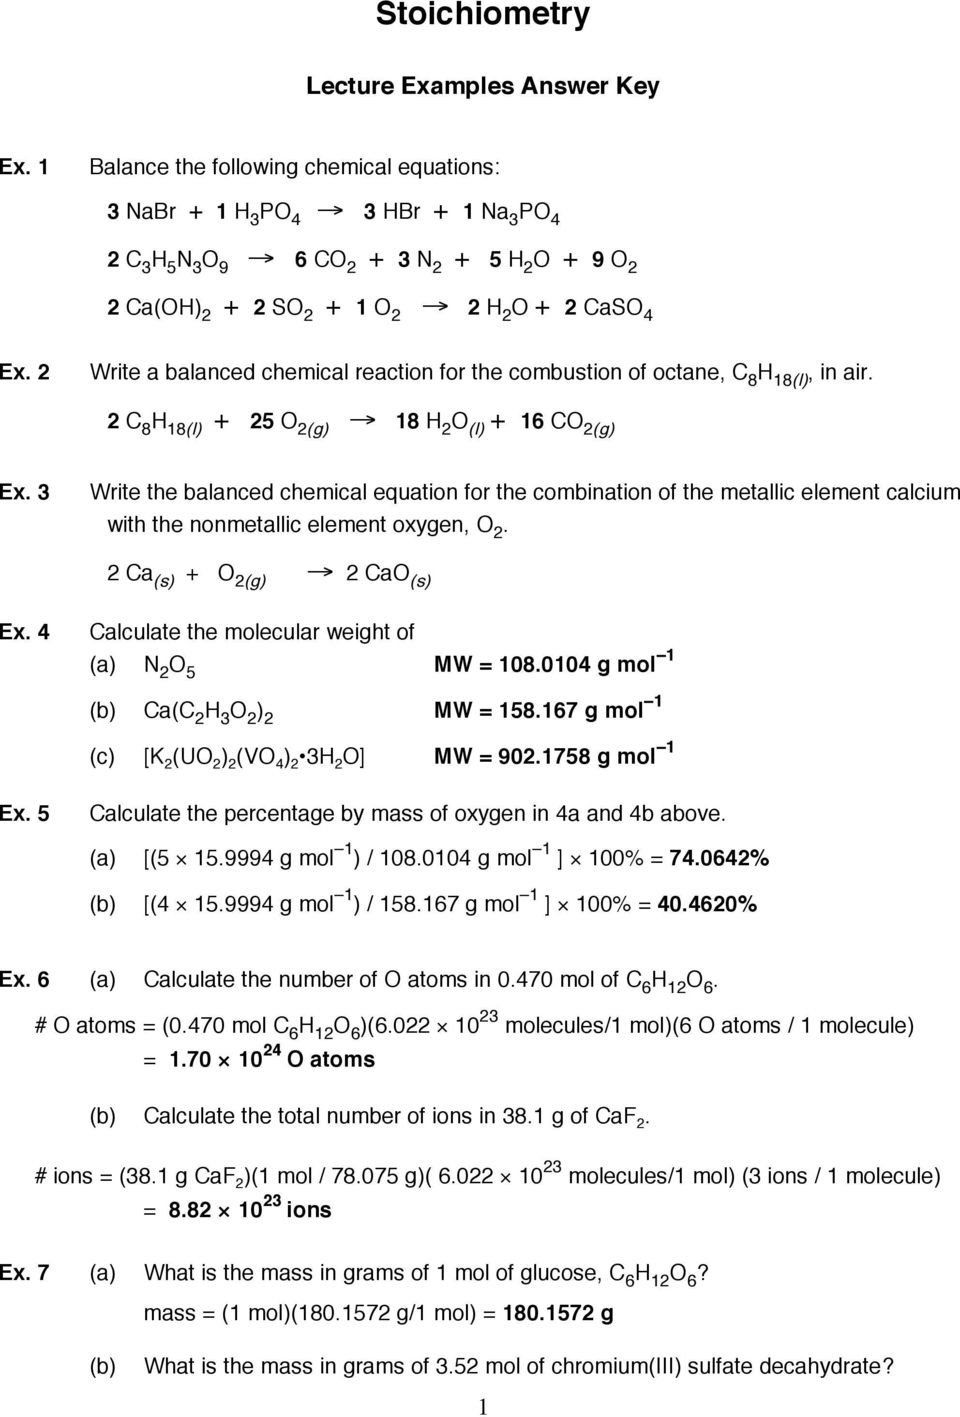 Stoichiometry Worksheet Answers Key Stoichiometry Lecture Examples Answer Key Pdf Fr In 2020 Persuasive Writing Prompts Kids Worksheets Printables Rational Expressions